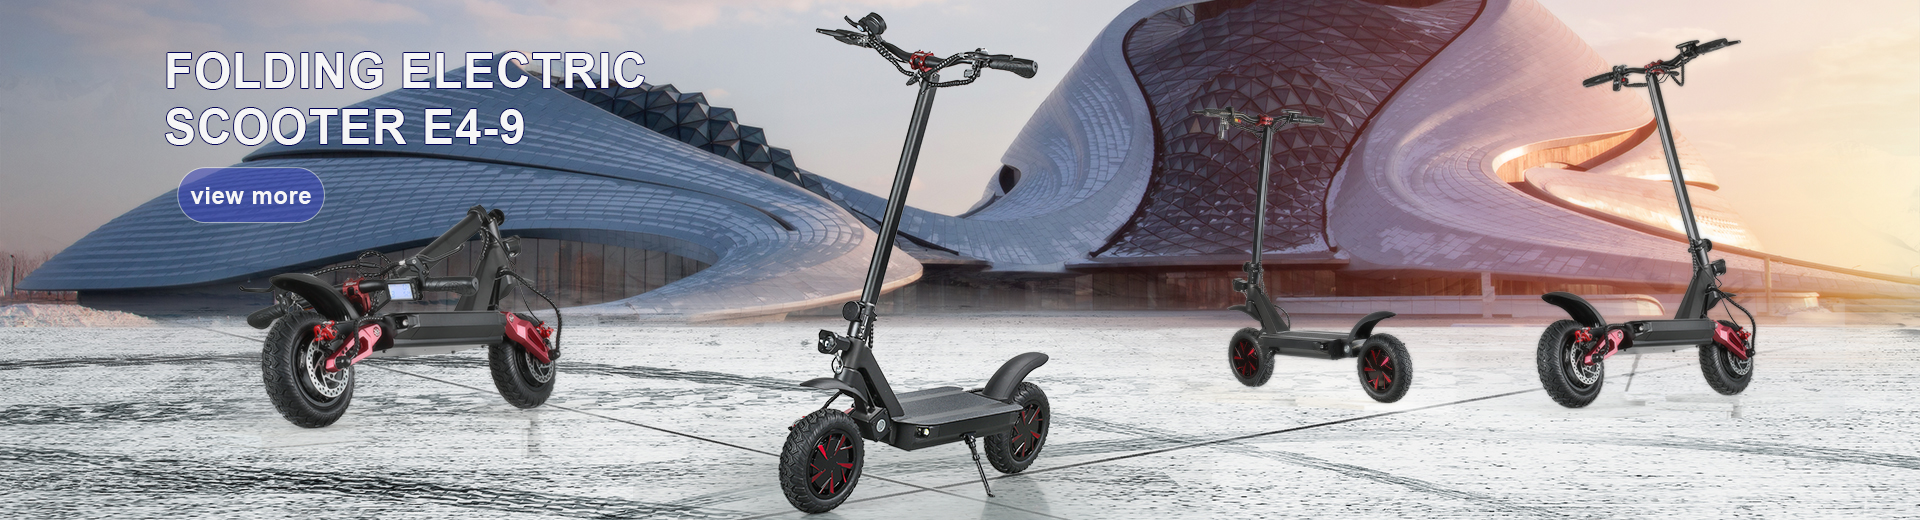 Folding Electric Scooter E4